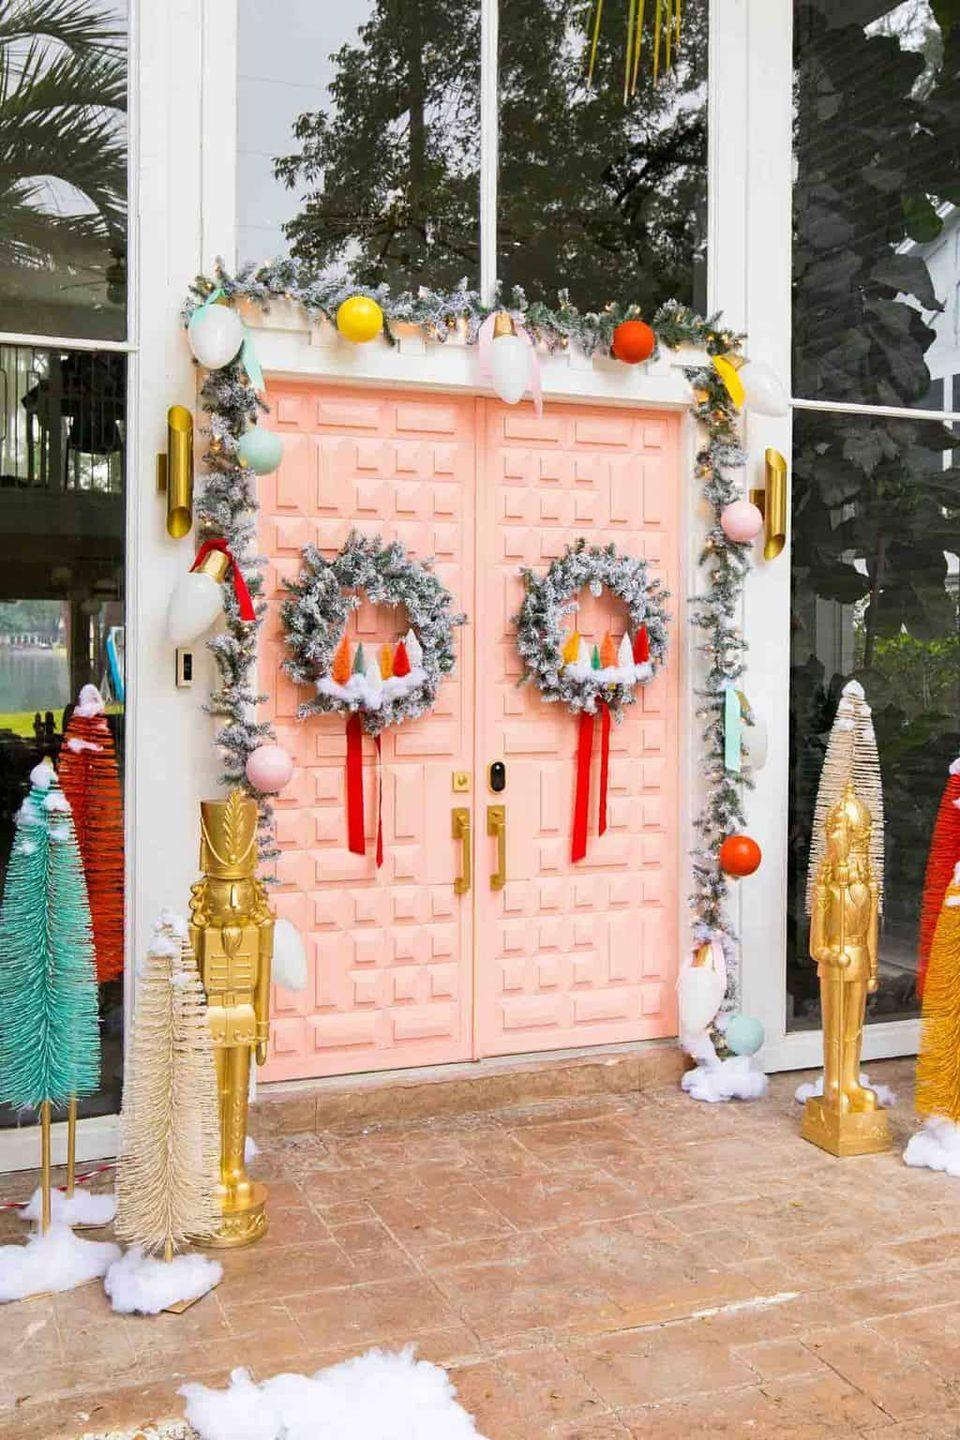 "<p>Tired of the same old red-and-green theme? Think outside the box, like <a href=""https://sugarandcloth.com/our-home-colorful-front-door-christmas-decor/"" rel=""nofollow noopener"" target=""_blank"" data-ylk=""slk:Sugar & Cloth"" class=""link rapid-noclick-resp"">Sugar & Cloth</a> did here with these salmon-pink doors. Funky colored bulbs frame the entryway, while spray-painted toy soldiers and freestanding sisal trees–echoing the smaller ones inside the wreaths–complete the look.</p>"